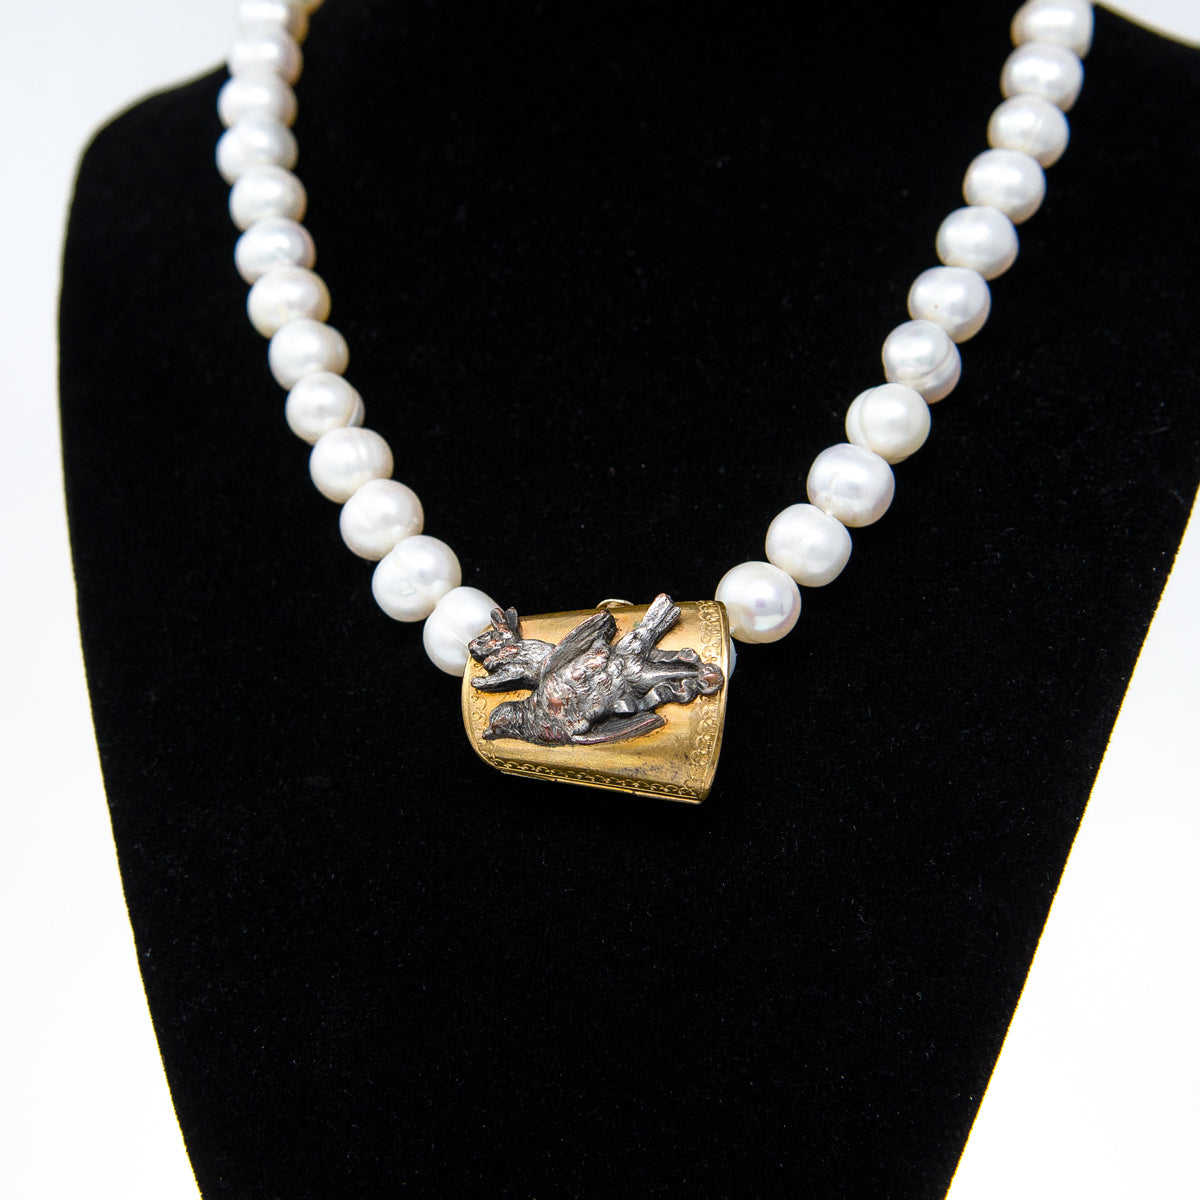 Freshwater Pearl Necklace with Wild Game Enhancer